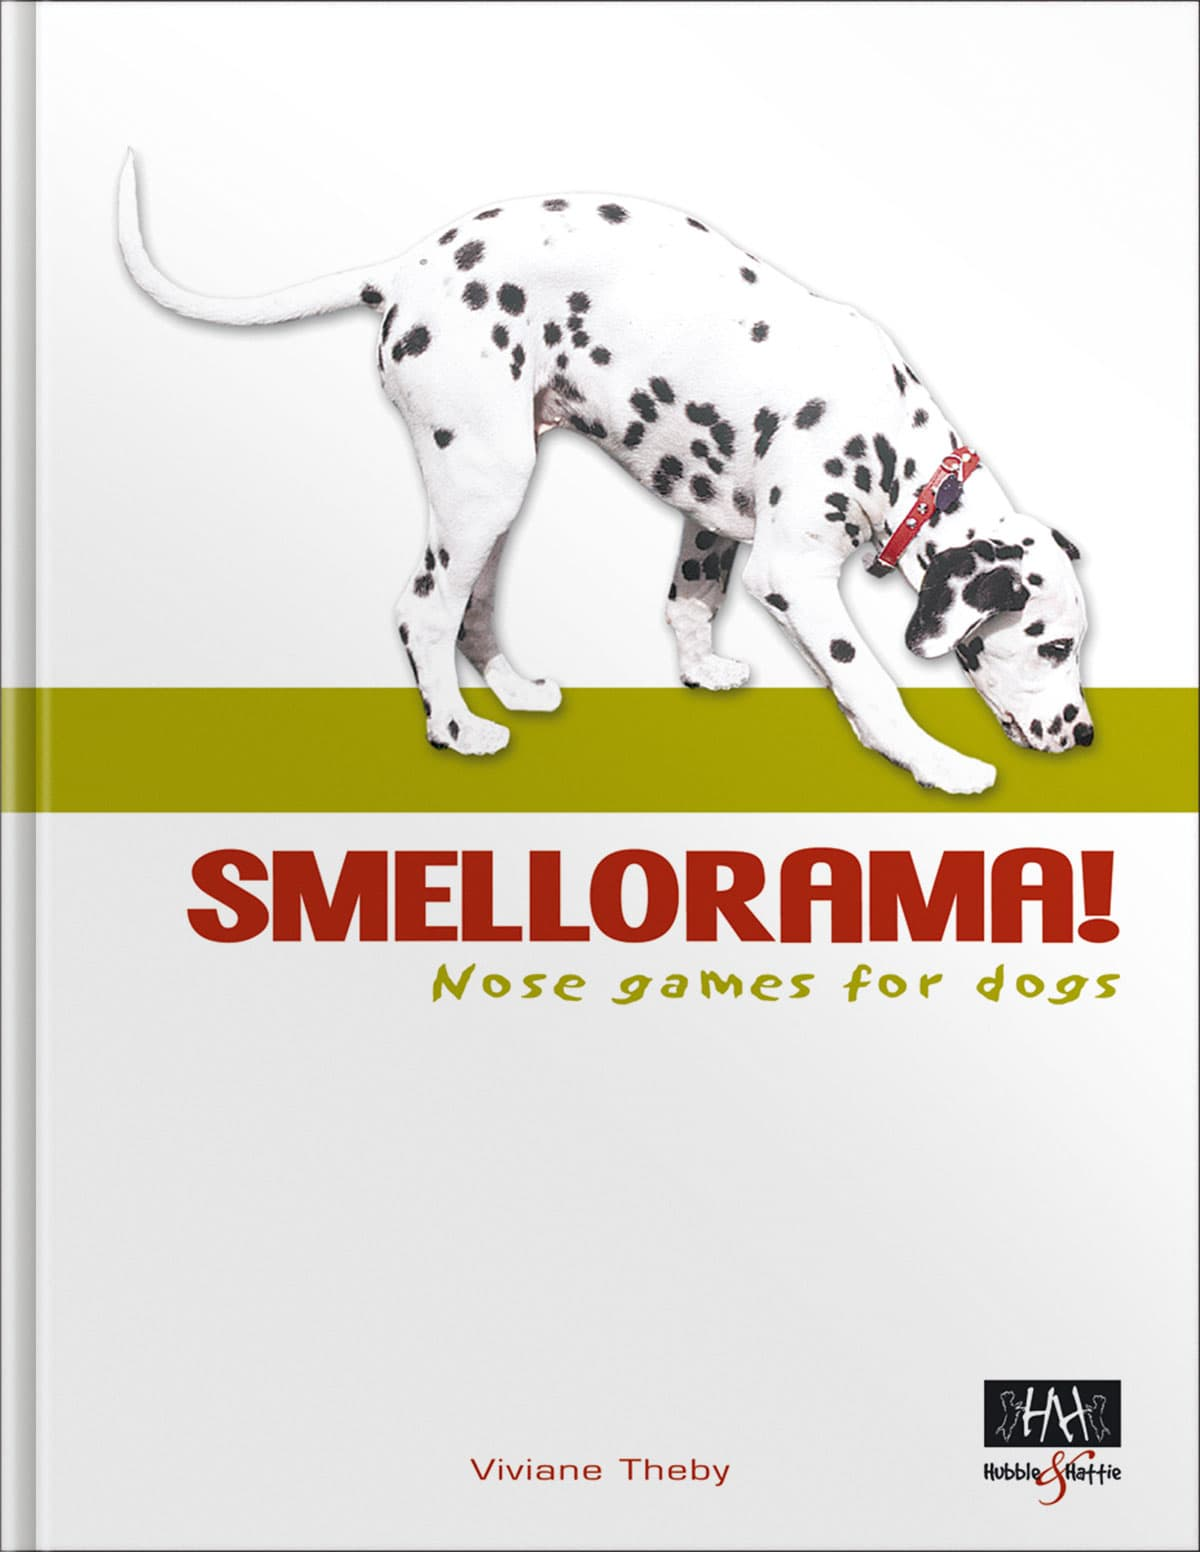 Smellorama! Nose games for dogs